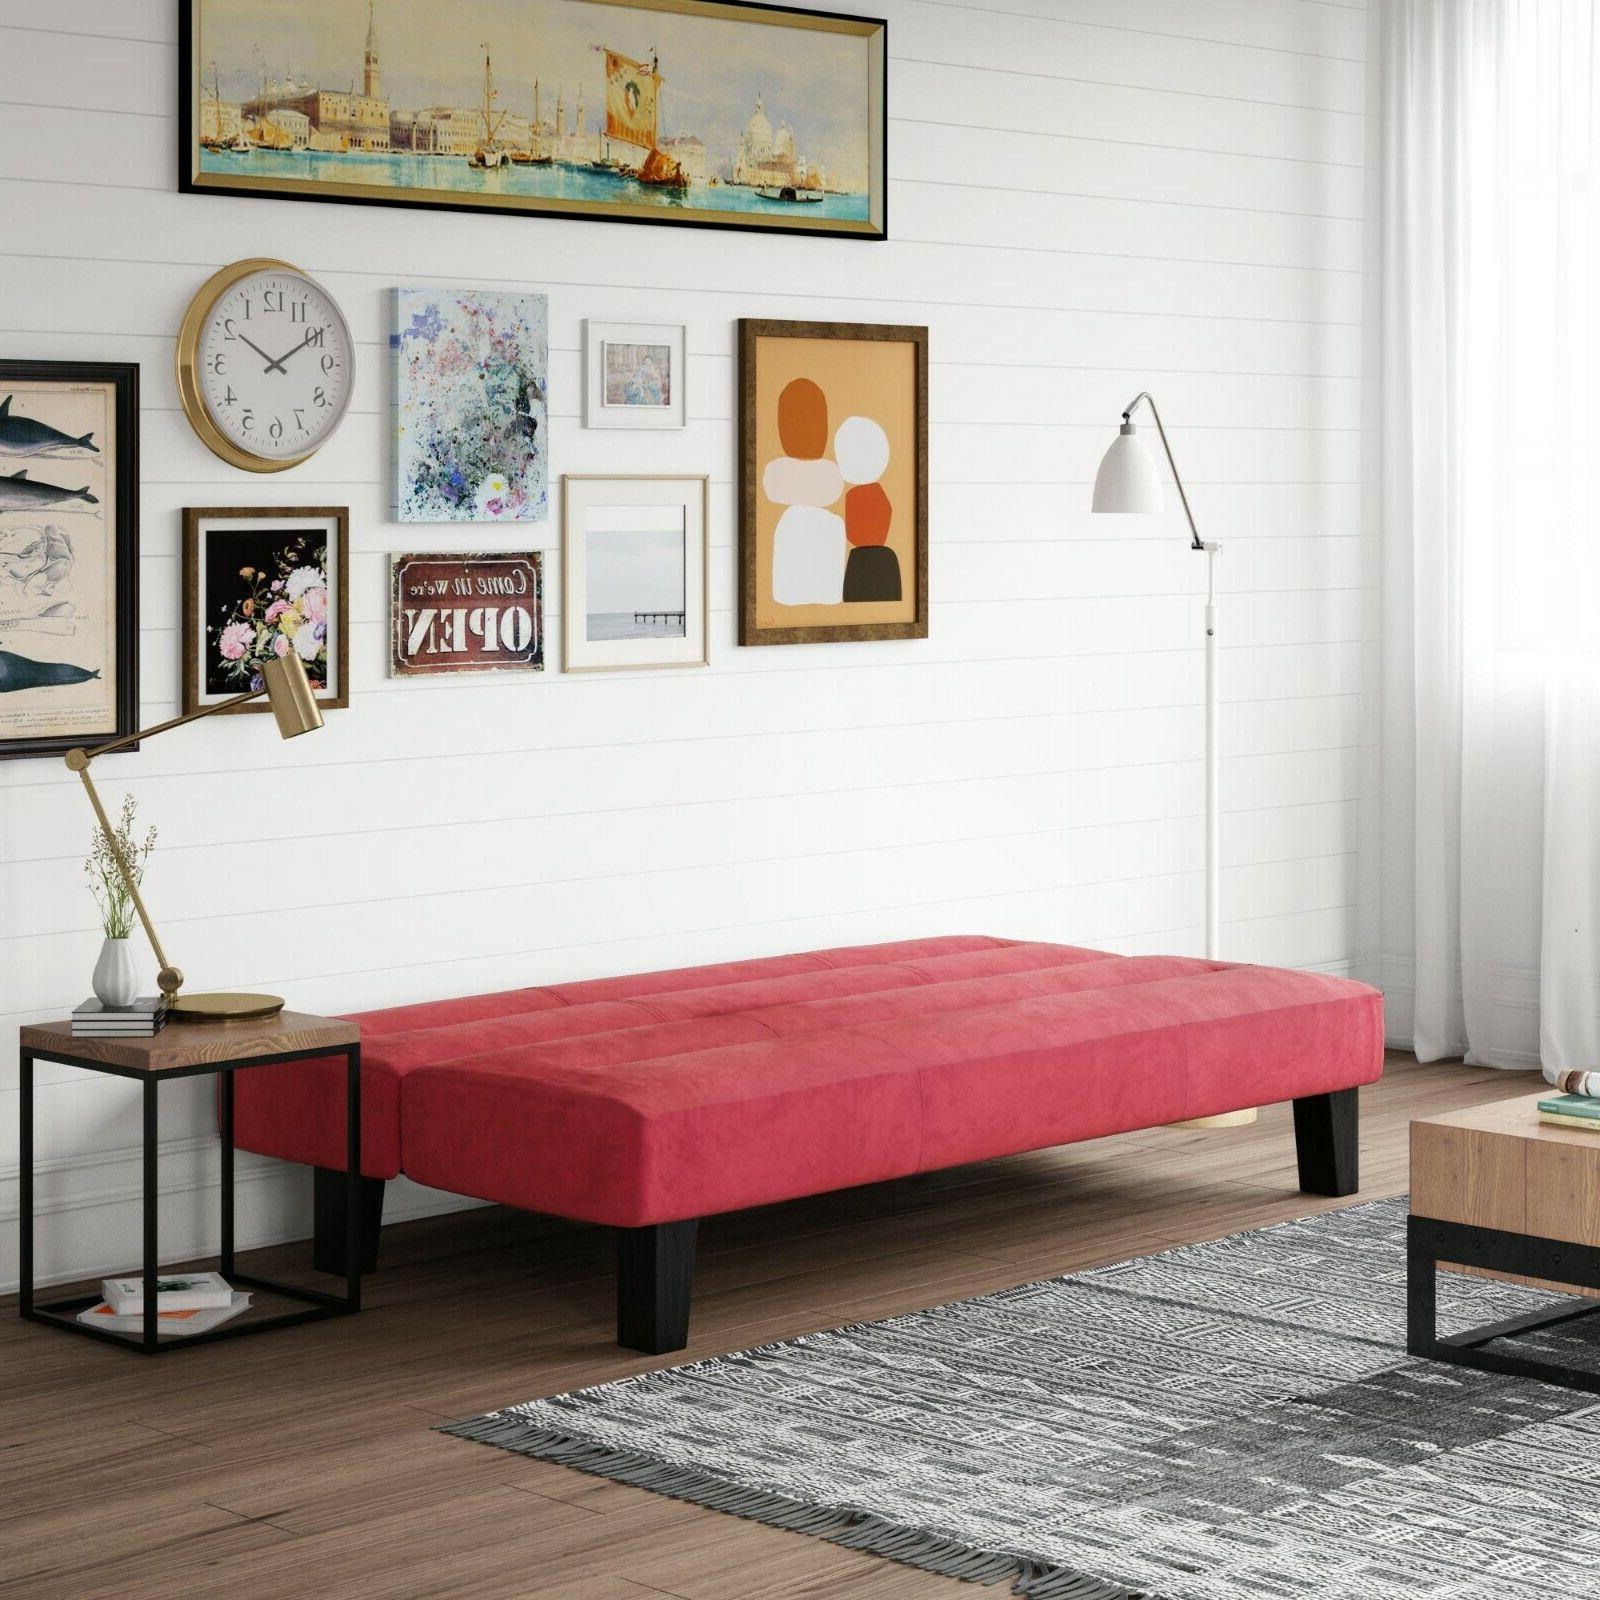 Convertible Red Couch Sleeper Guest Design Lounge Chaise